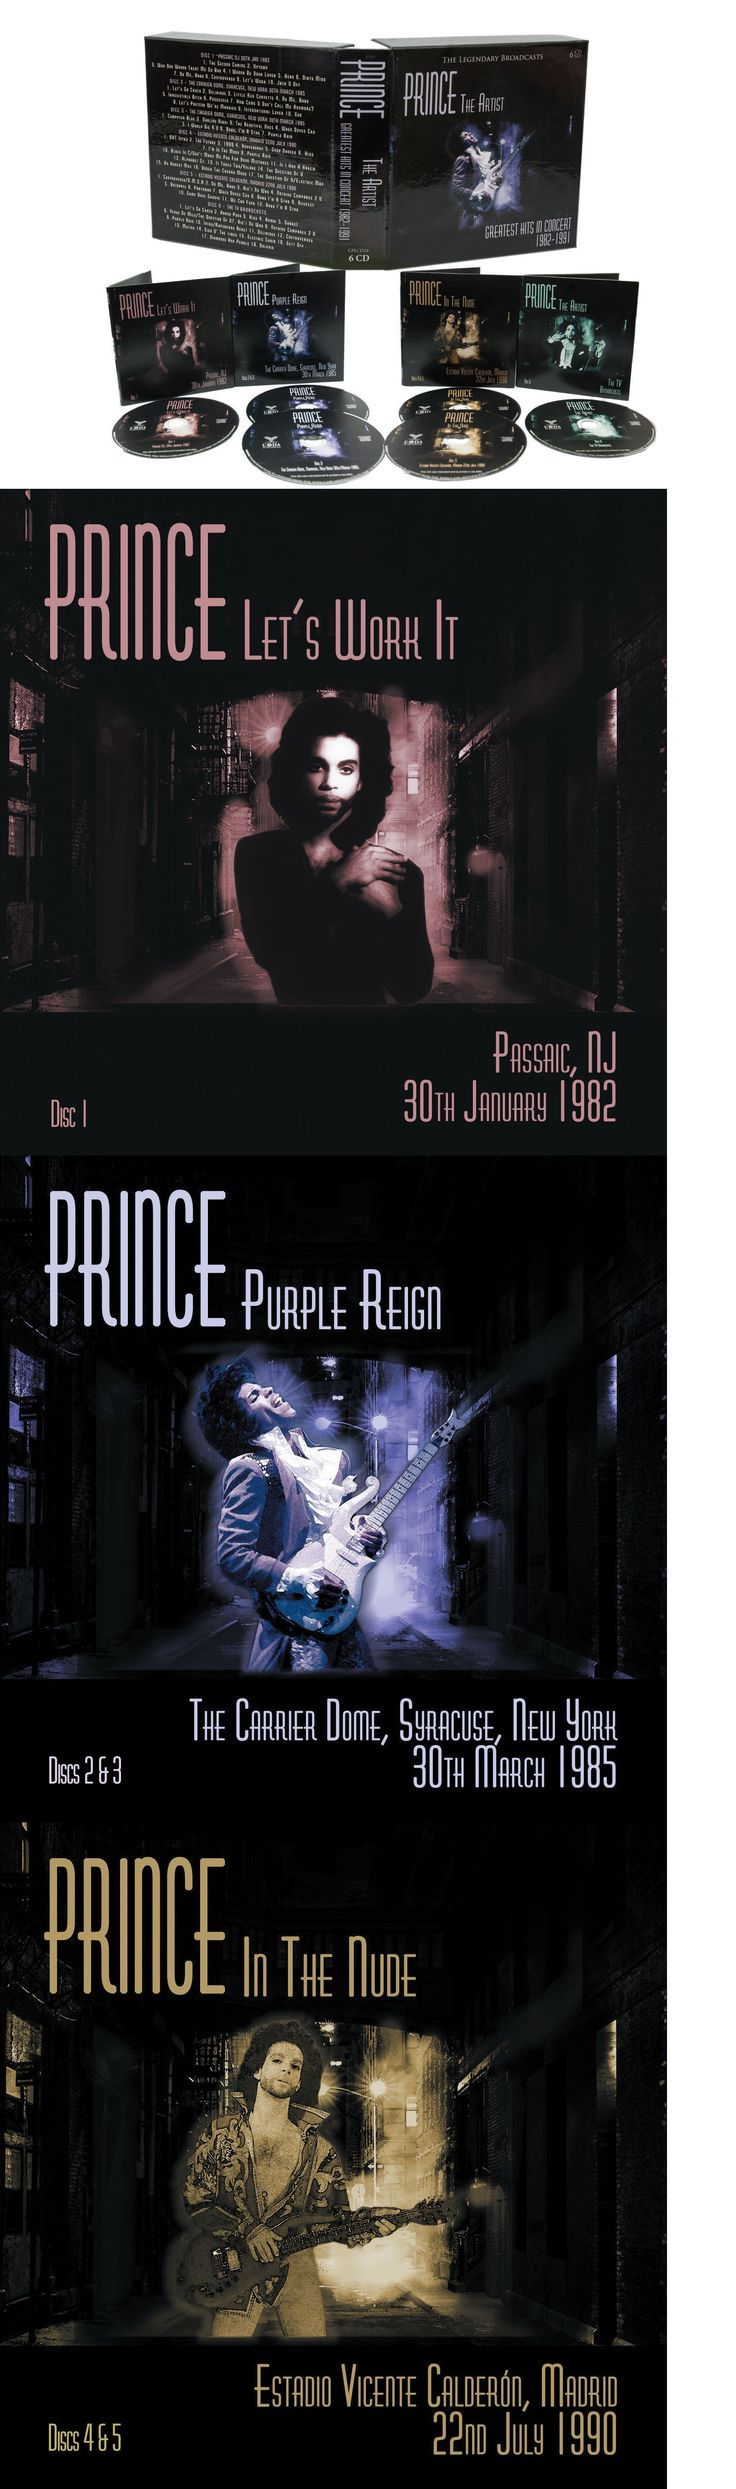 Music Albums: Prince - The Artist: Greatest Hits In Concert Live 1982-1991- 6 Cd Box Set -> BUY IT NOW ONLY: $39.95 on eBay!